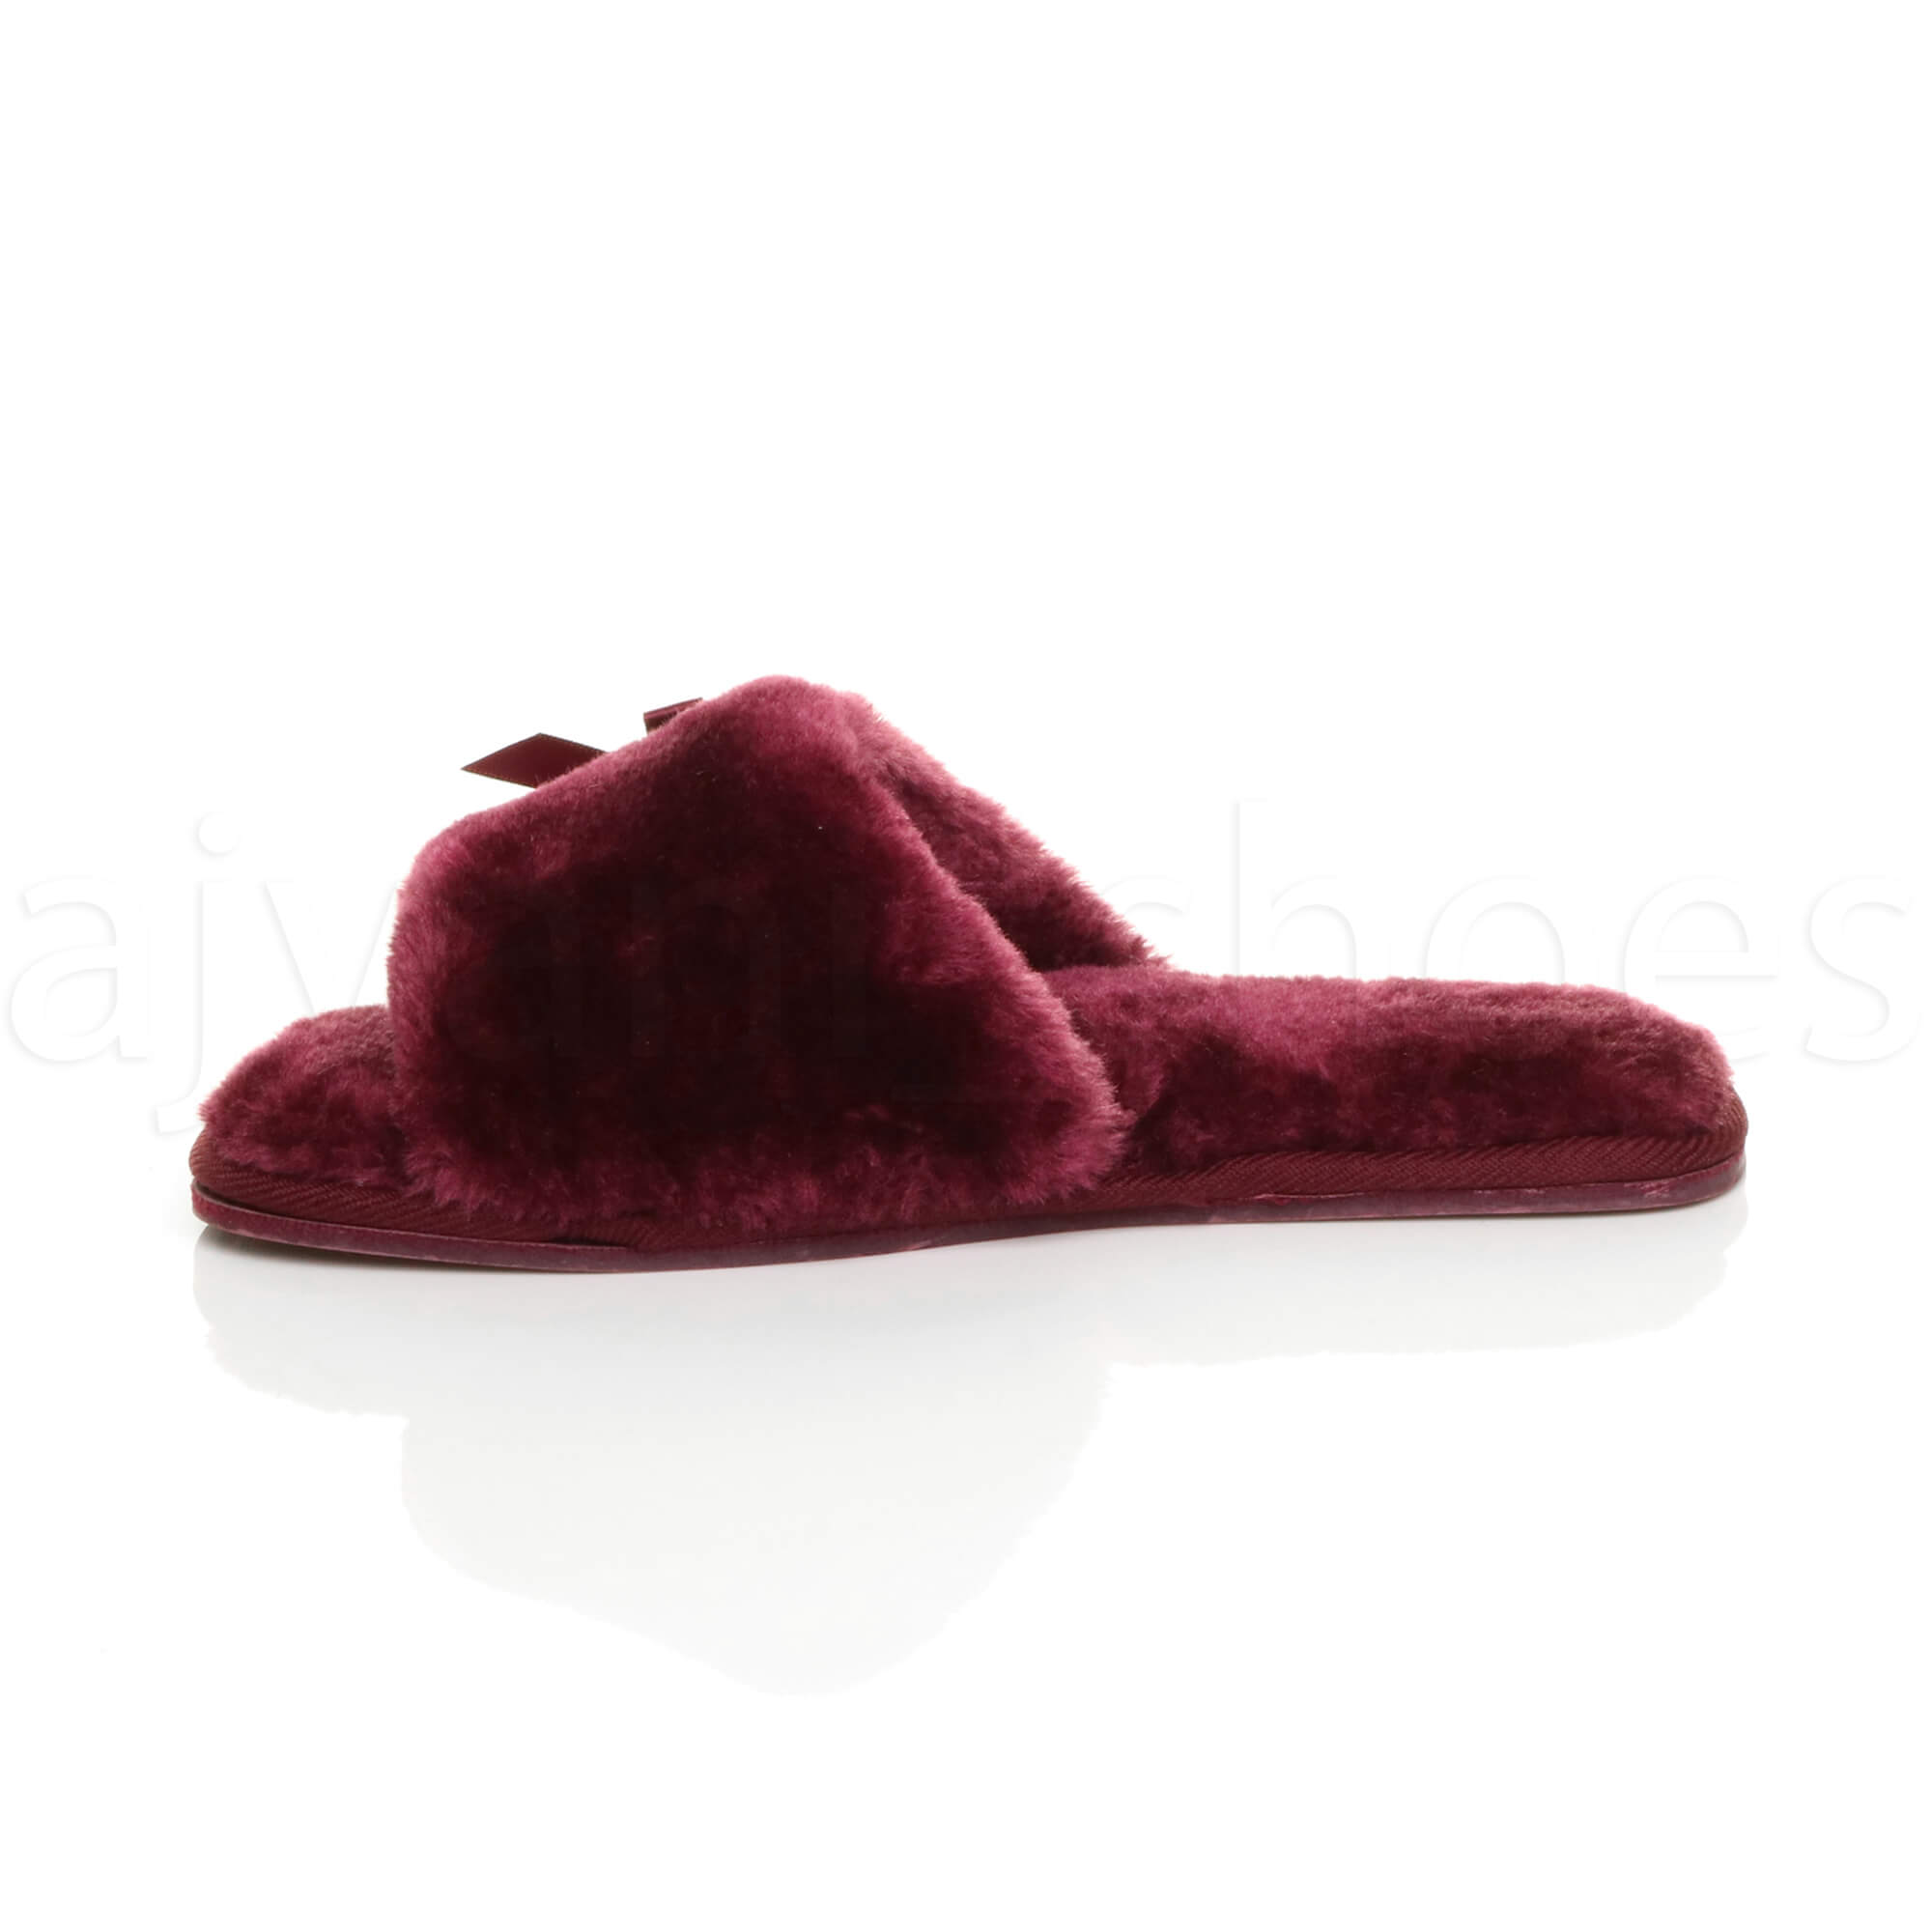 WOMENS-LADIES-FLAT-PEEP-TOE-BOW-LUXURY-COSY-FUR-LINED-SLIP-ON-SLIPPERS-SIZE thumbnail 20